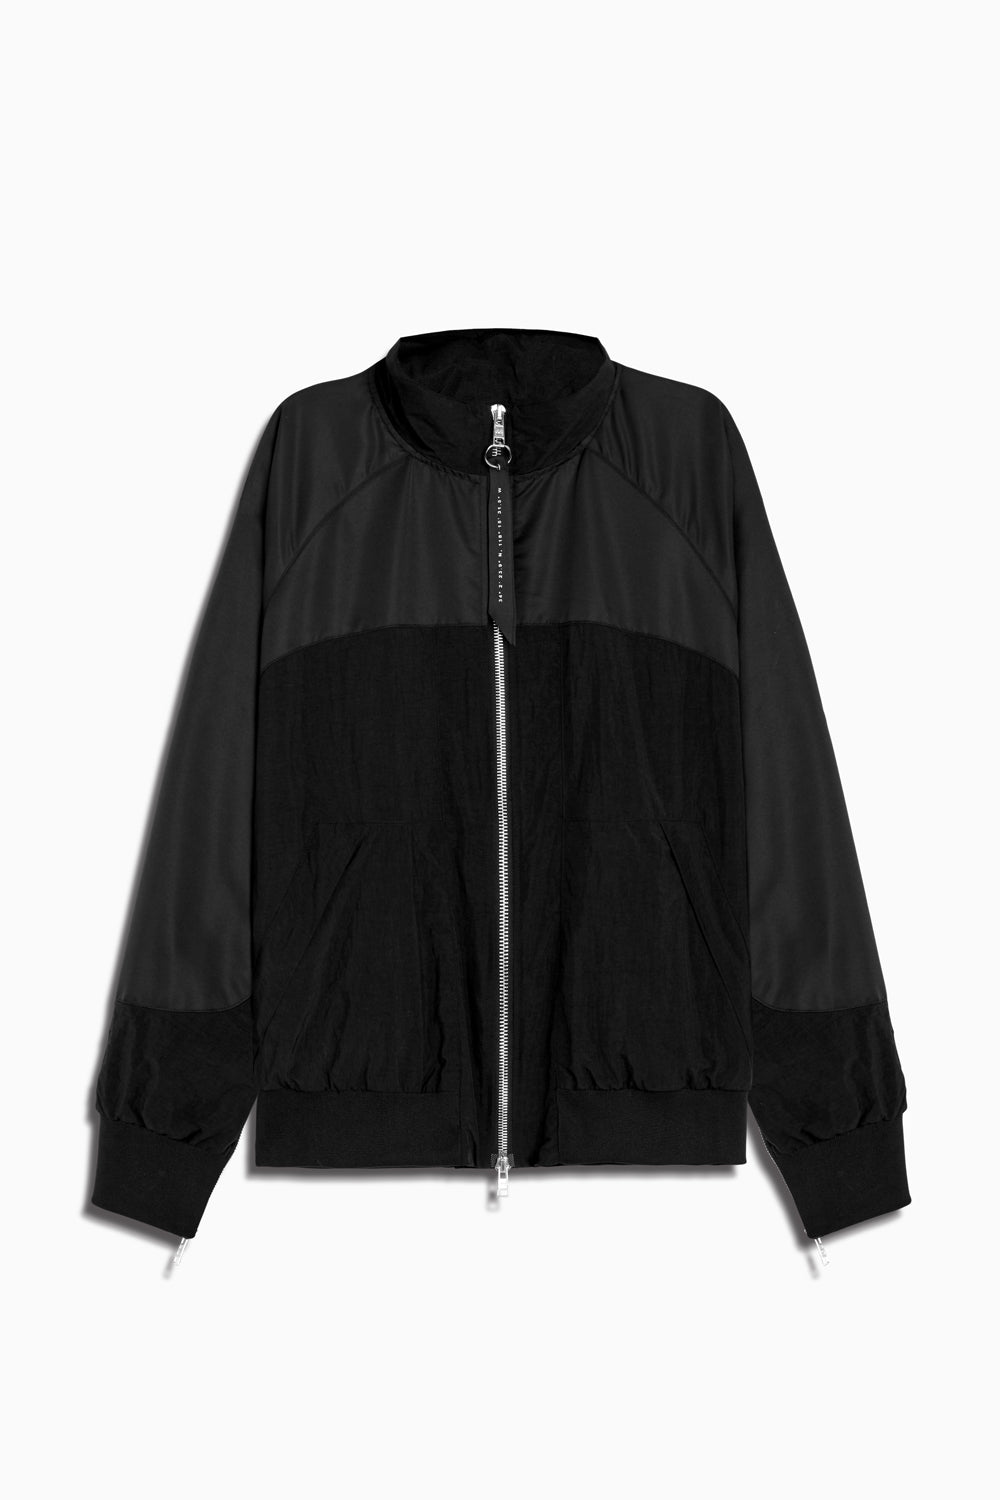 bomber 7 jacket in black/black by daniel patrick